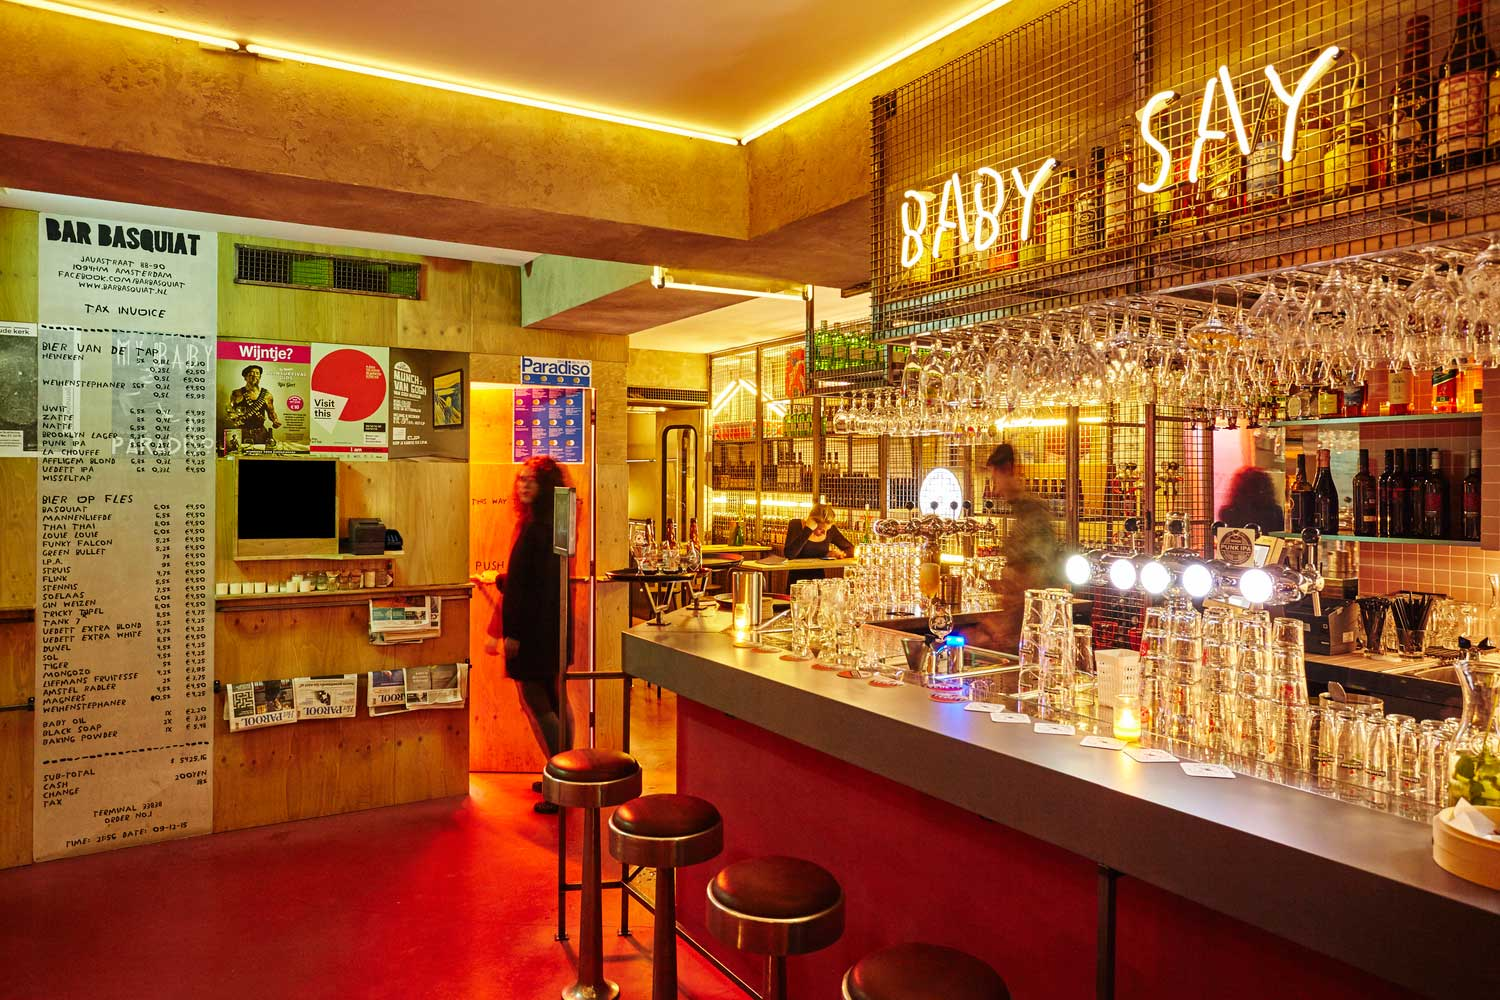 Bar Basquiat in Amsterdam by Studio Modijefsky | Yellowtrace